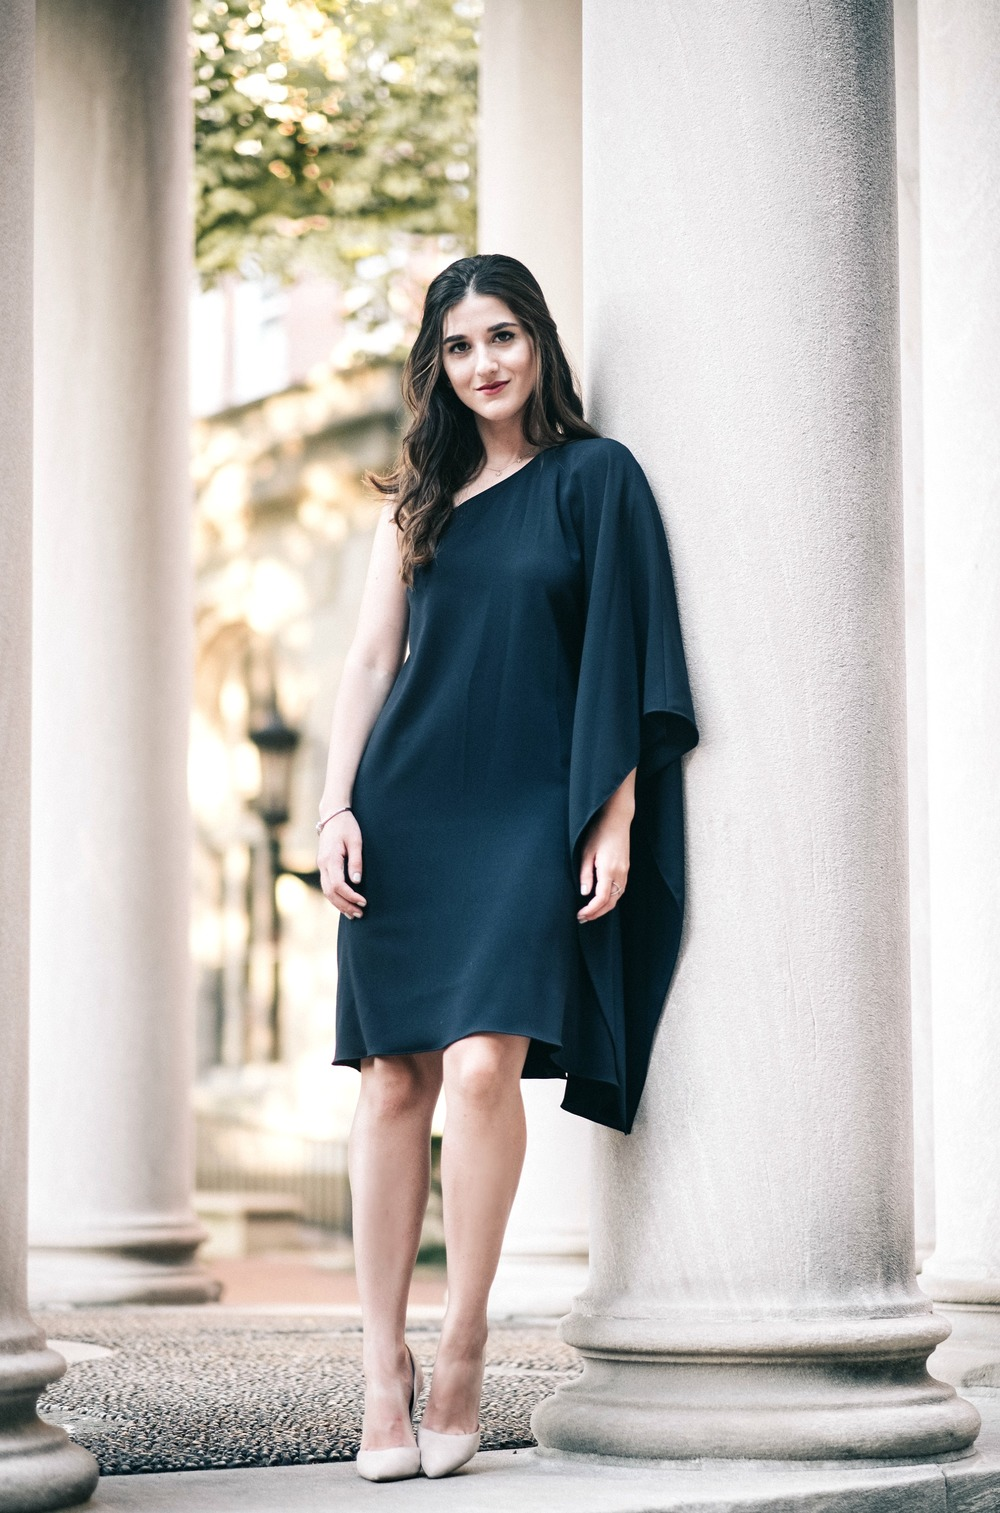 One Shoulder Dress Jay Godgrey Louboutins & Love Fashion Blog Esther Santer NYC Street Style Blogger Outfit OOTD Trendy Girl Women Elegant Fancy Attire Hair Inspo Photoshoot Nude Heels Steve Madden Navy Gold Jewelry Pretty Shopping Beautiful Buy Shoes.jpg